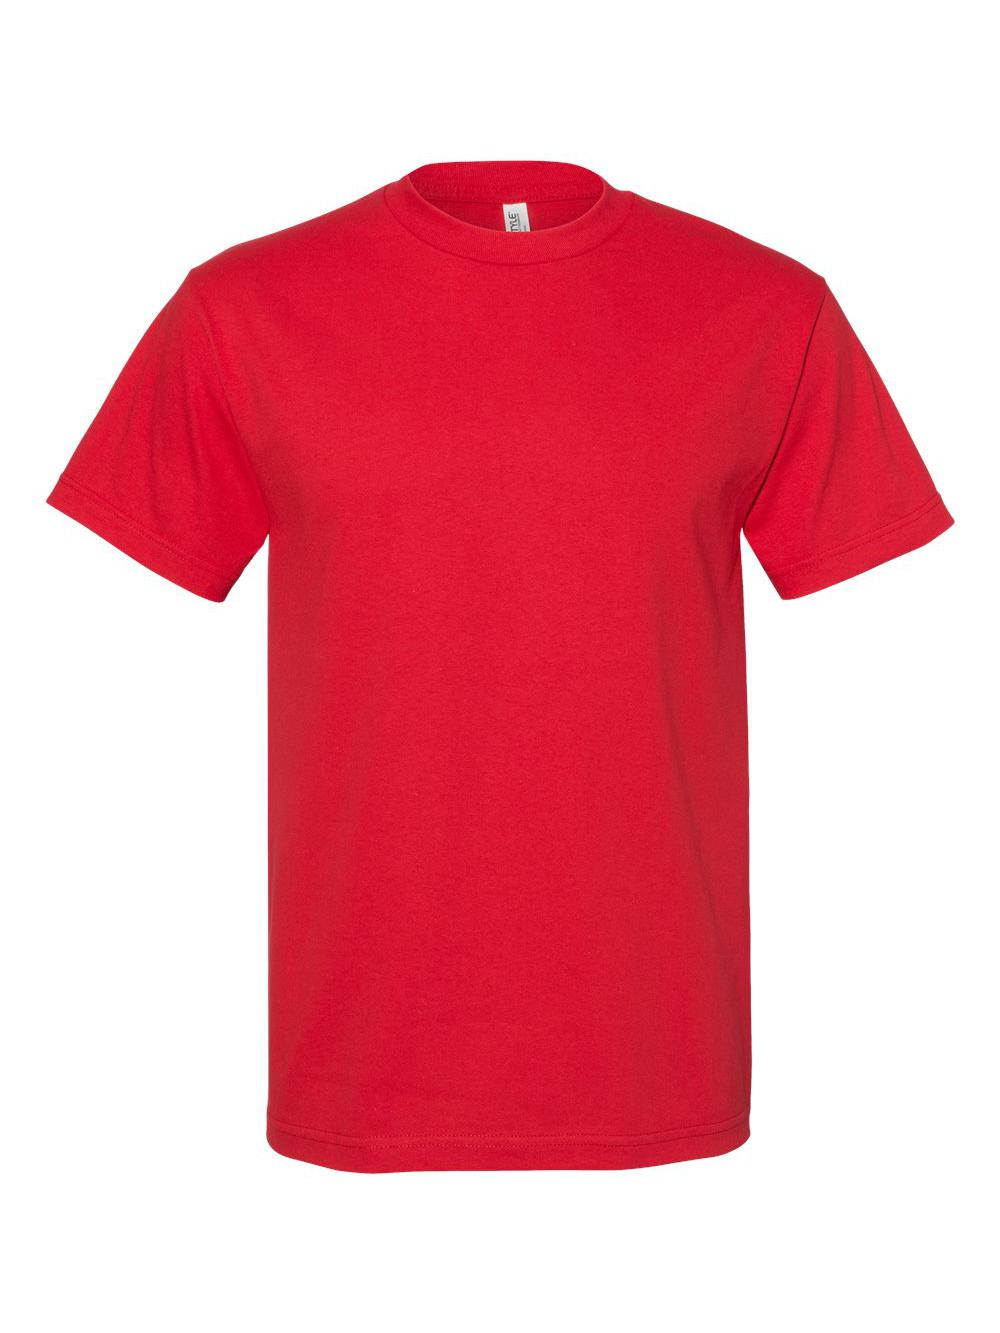 ALSTYLE-Classic-T-Shirt-1301 thumbnail 65